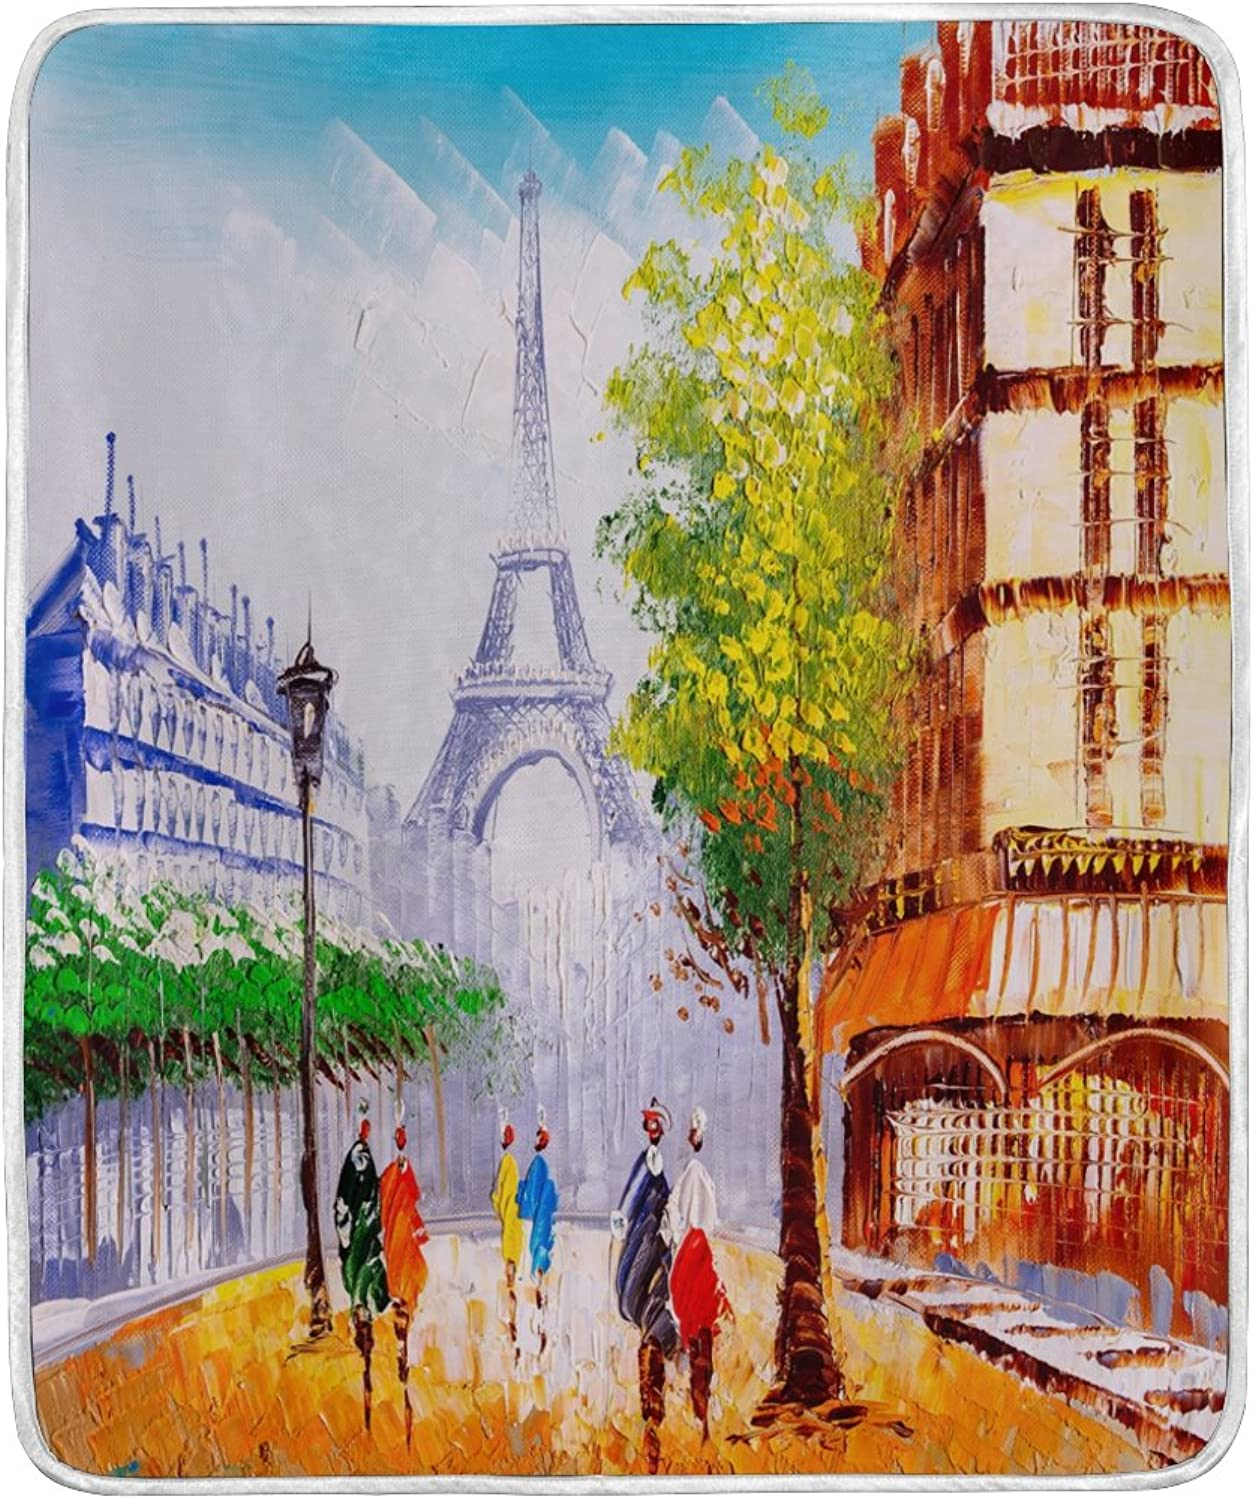 ALAZA Home Decor Street of Paris Eiffel Tower Oil Painting Blanket Soft Warm Blankets for Bed Couch Sofa Lightweight Travelling Camping 60 x 50 inch Throw Size for Kids Boys Women